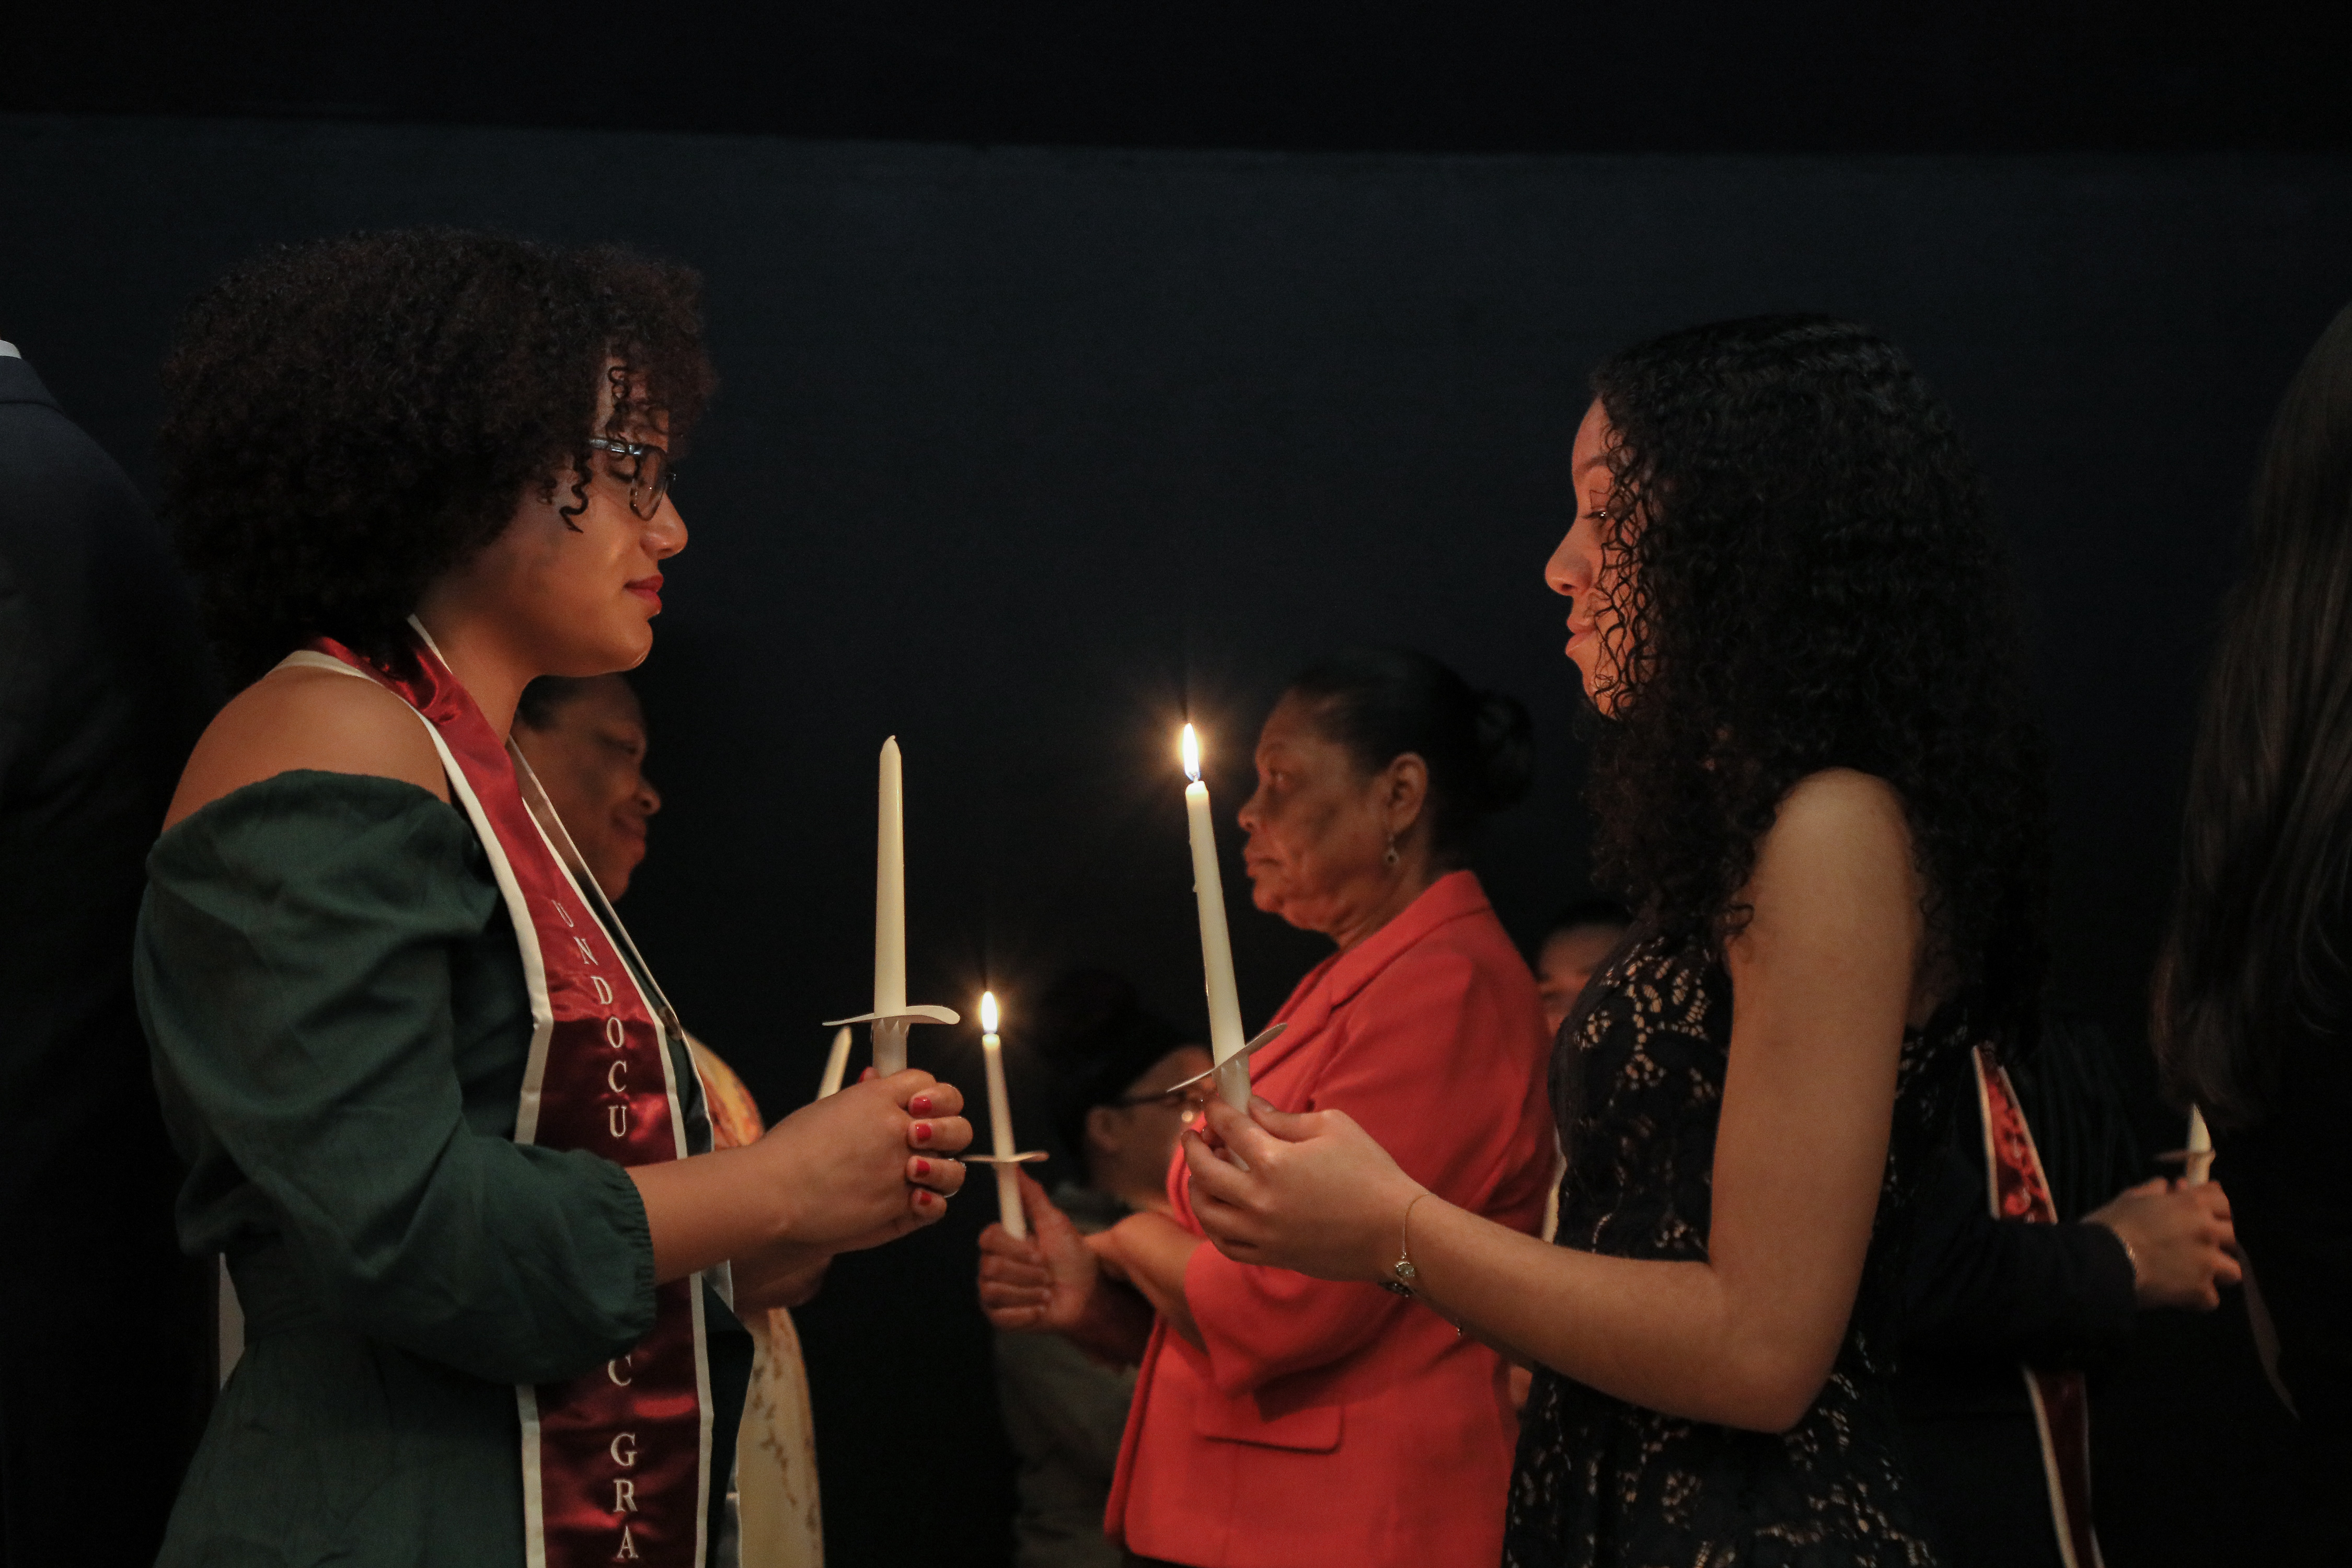 Women stand facing each other on the stage with lit candles.